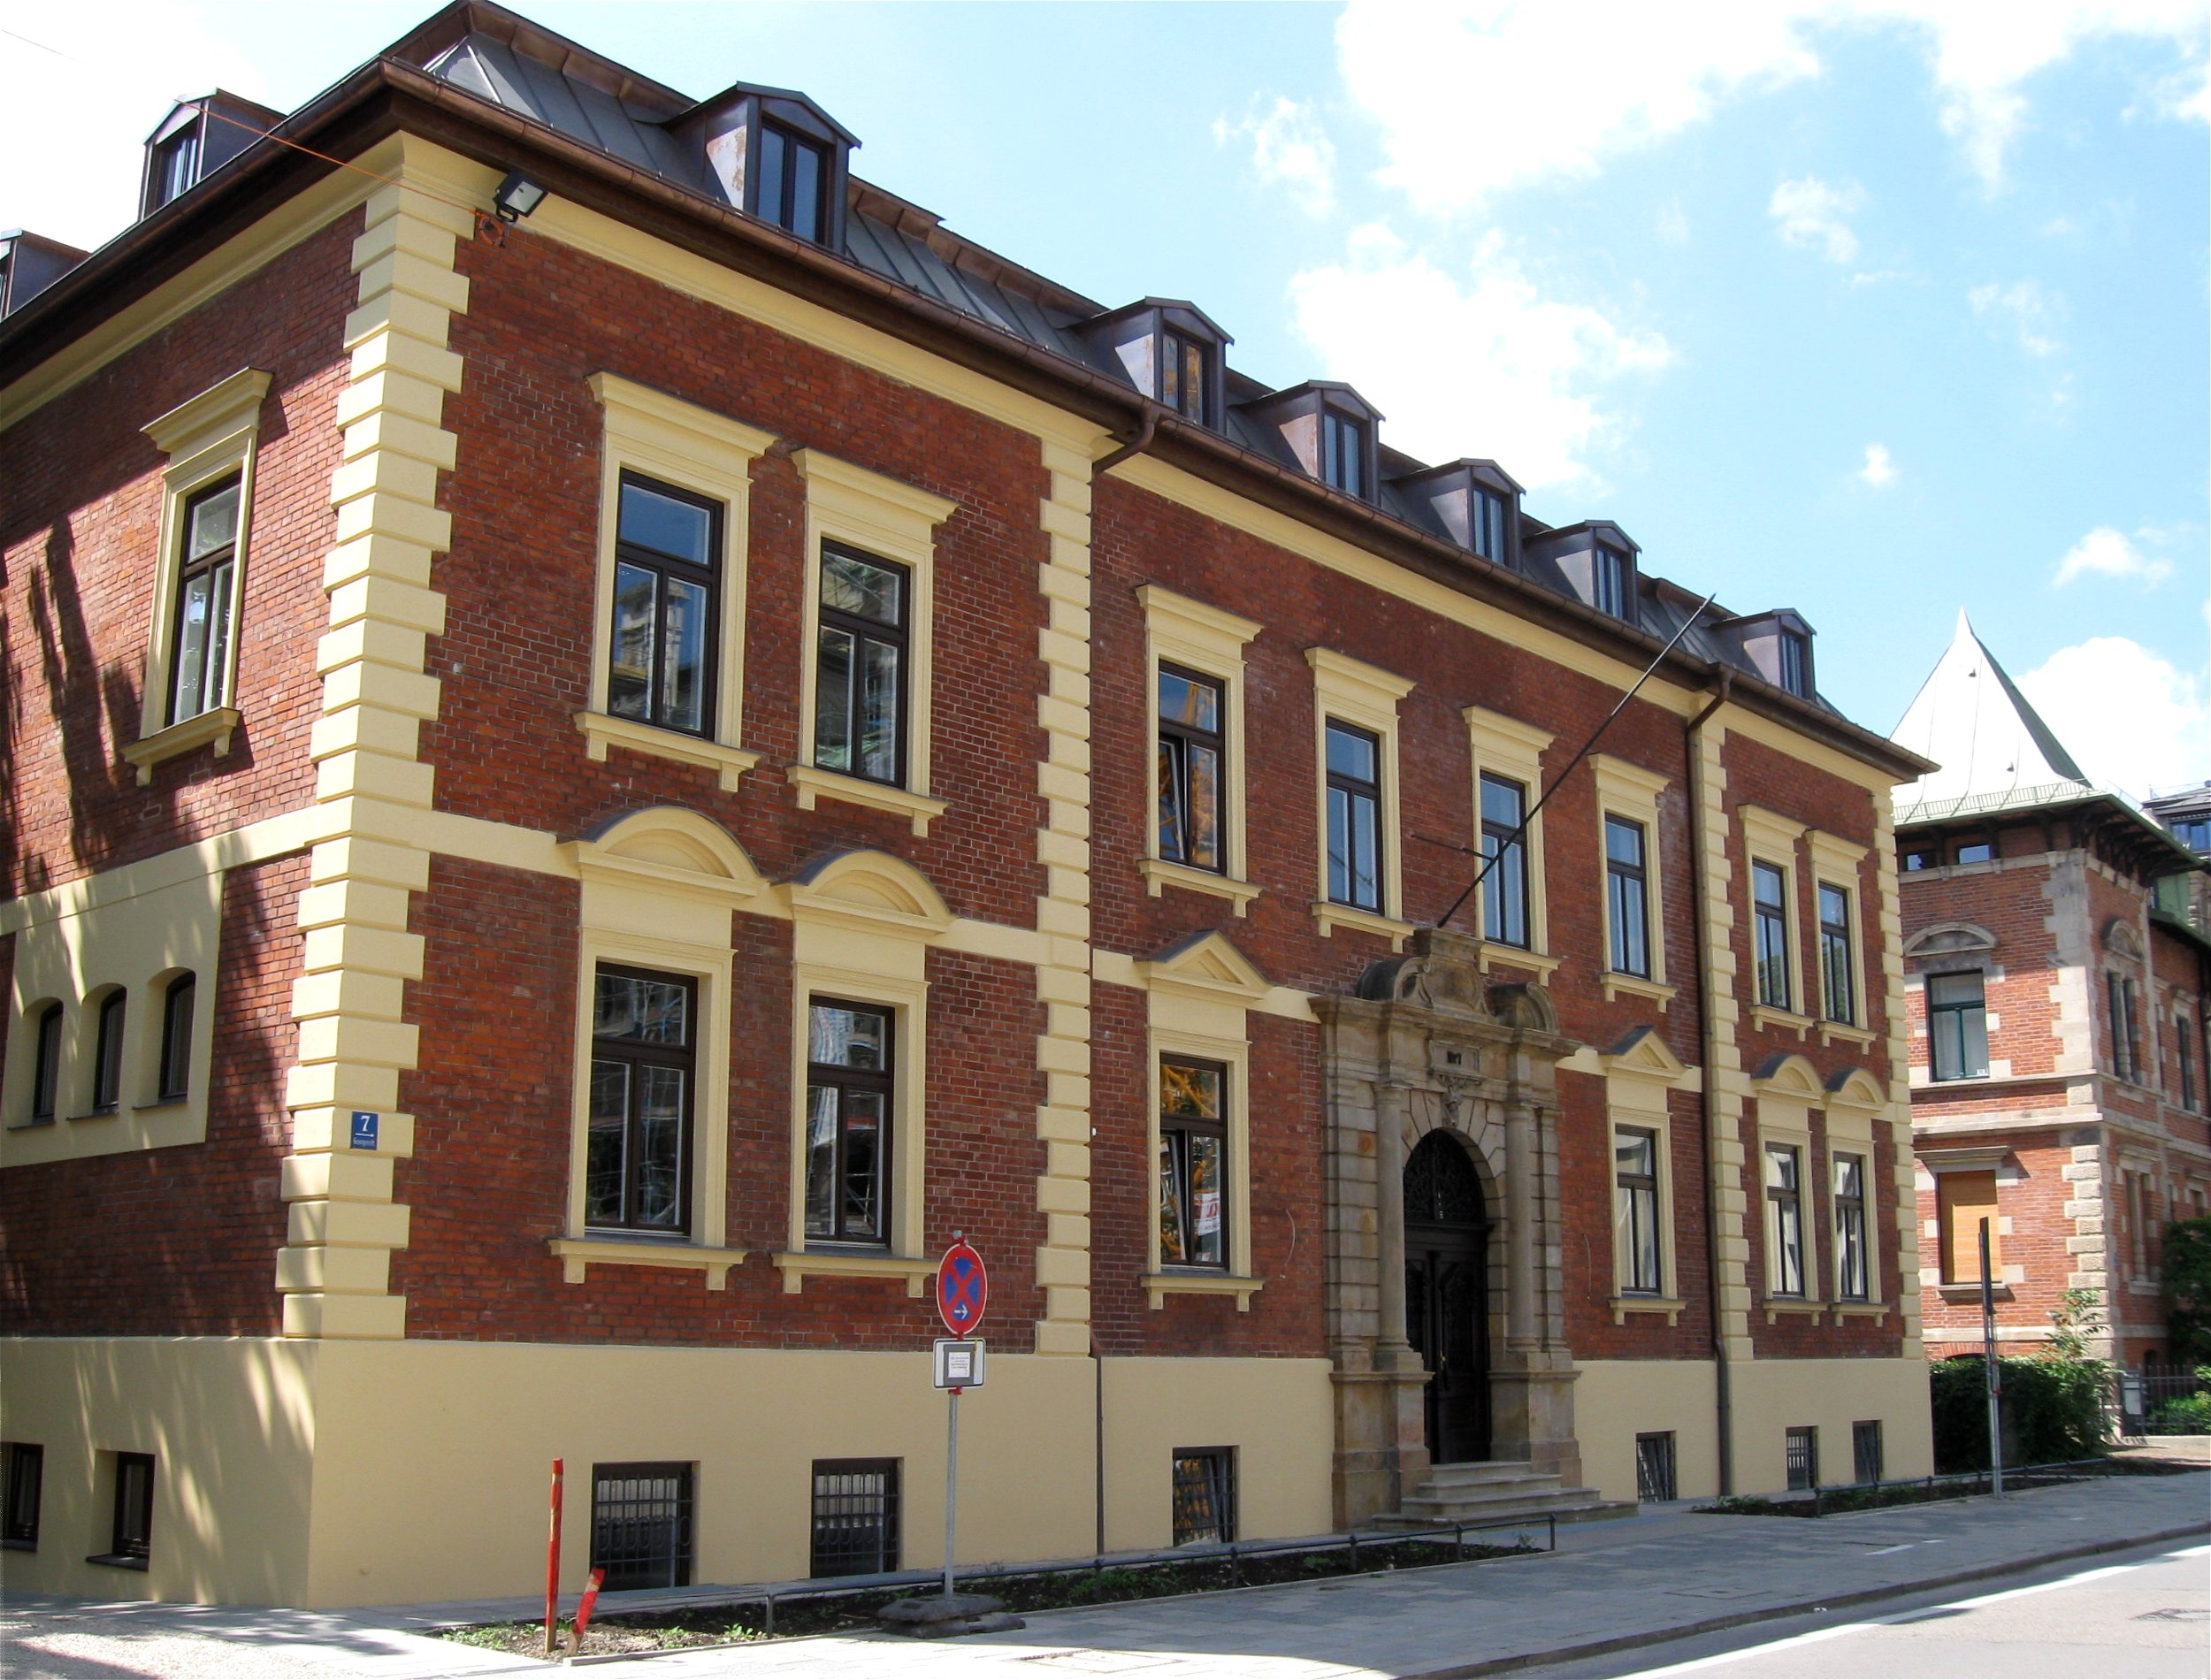 File:Haus Georgenstr. 7 Muenchen-1.jpg - Wikimedia Commons size: 2500 x 1900 post ID: 1 File size: 0 B